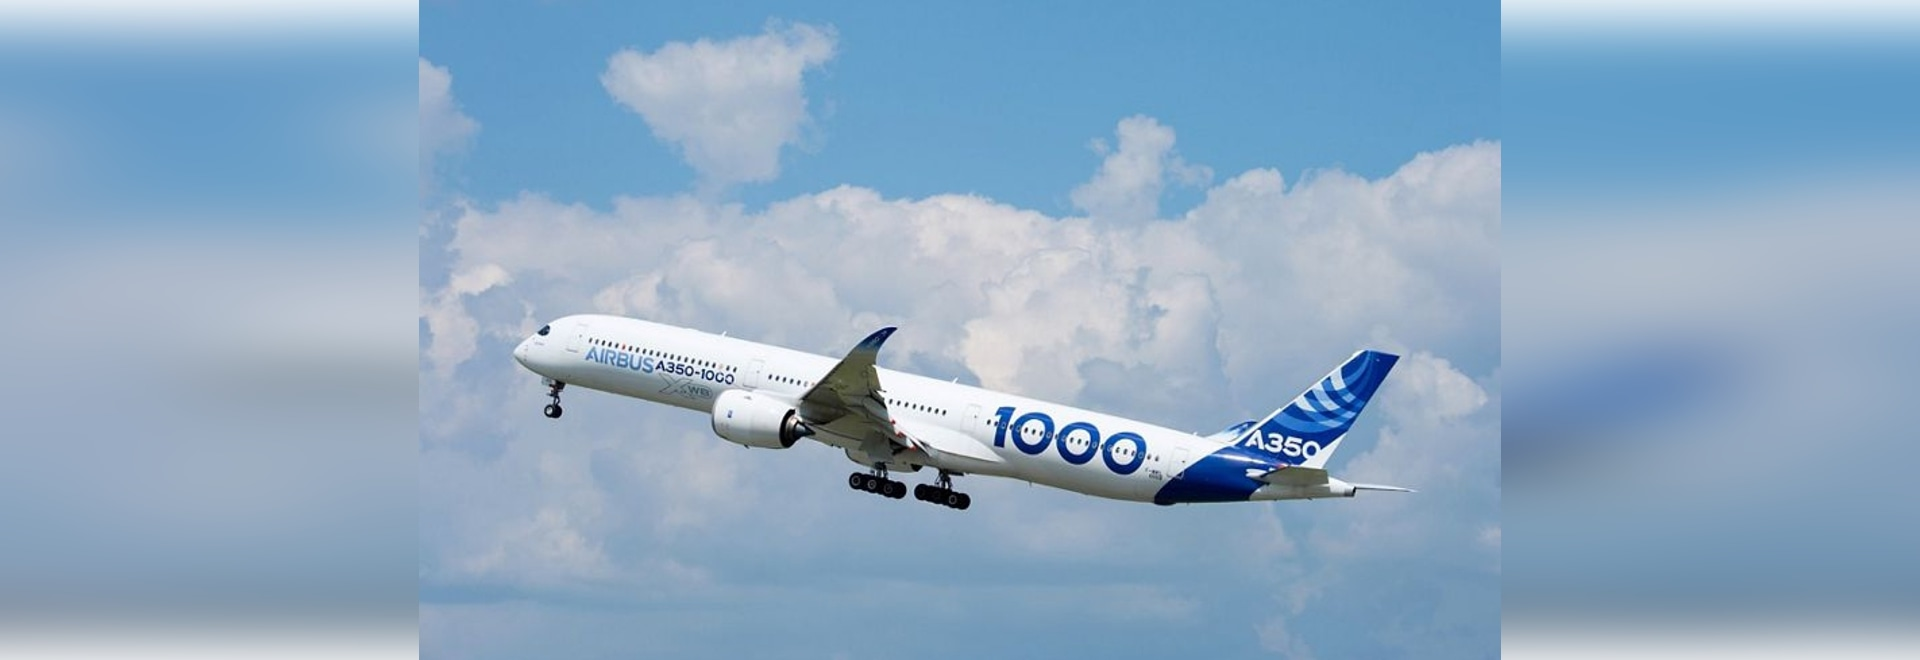 Airbus performs vision-based automatic take-off